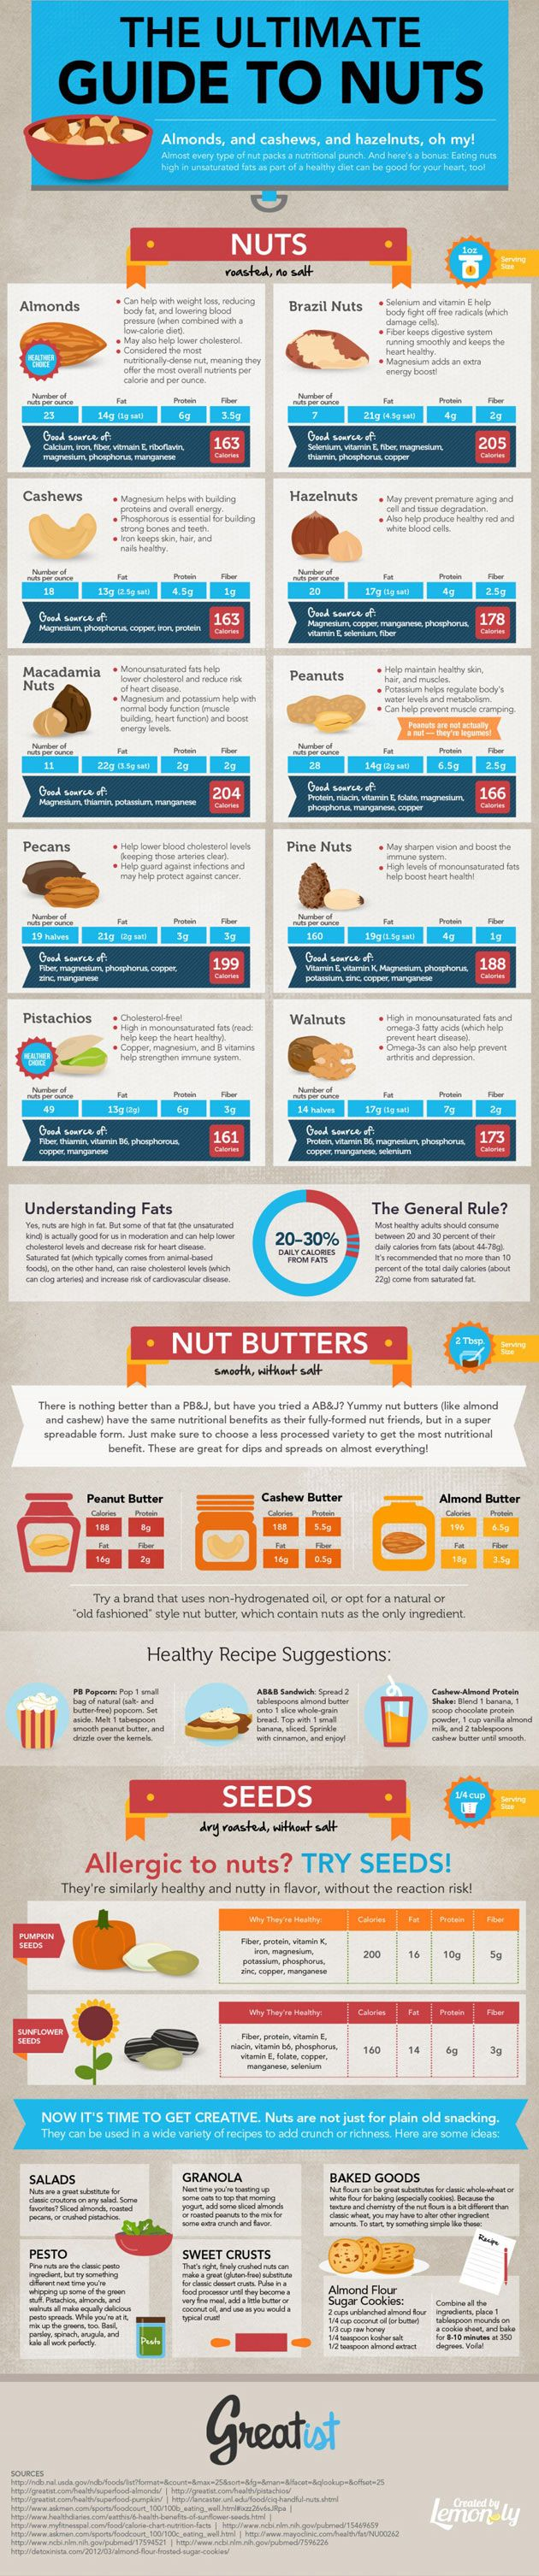 The Ultimate Guide to Nuts & Health Benefits Infographic (Apr. 5, 2013) -- Thanks to: Lemonly / Shell Harris / smoothieweb.com. A. Nuts: 1.) Almonds. 2.) Brazil Nuts. 3.) Cashews. 4.) Hazelnuts. 5.) Macadamia Nuts. 6.) Peanuts. 7.) Pecans. 8.) Pine Nuts. 9.) Pistachios, 10.) Walnuts. B. Nut Butters: Peanut / Cashew / Almond. C. Healthy Recipe Suggestions. D. Seeds: Allergic to Nuts? Try Seeds! E. Nut Recipe Ideas.